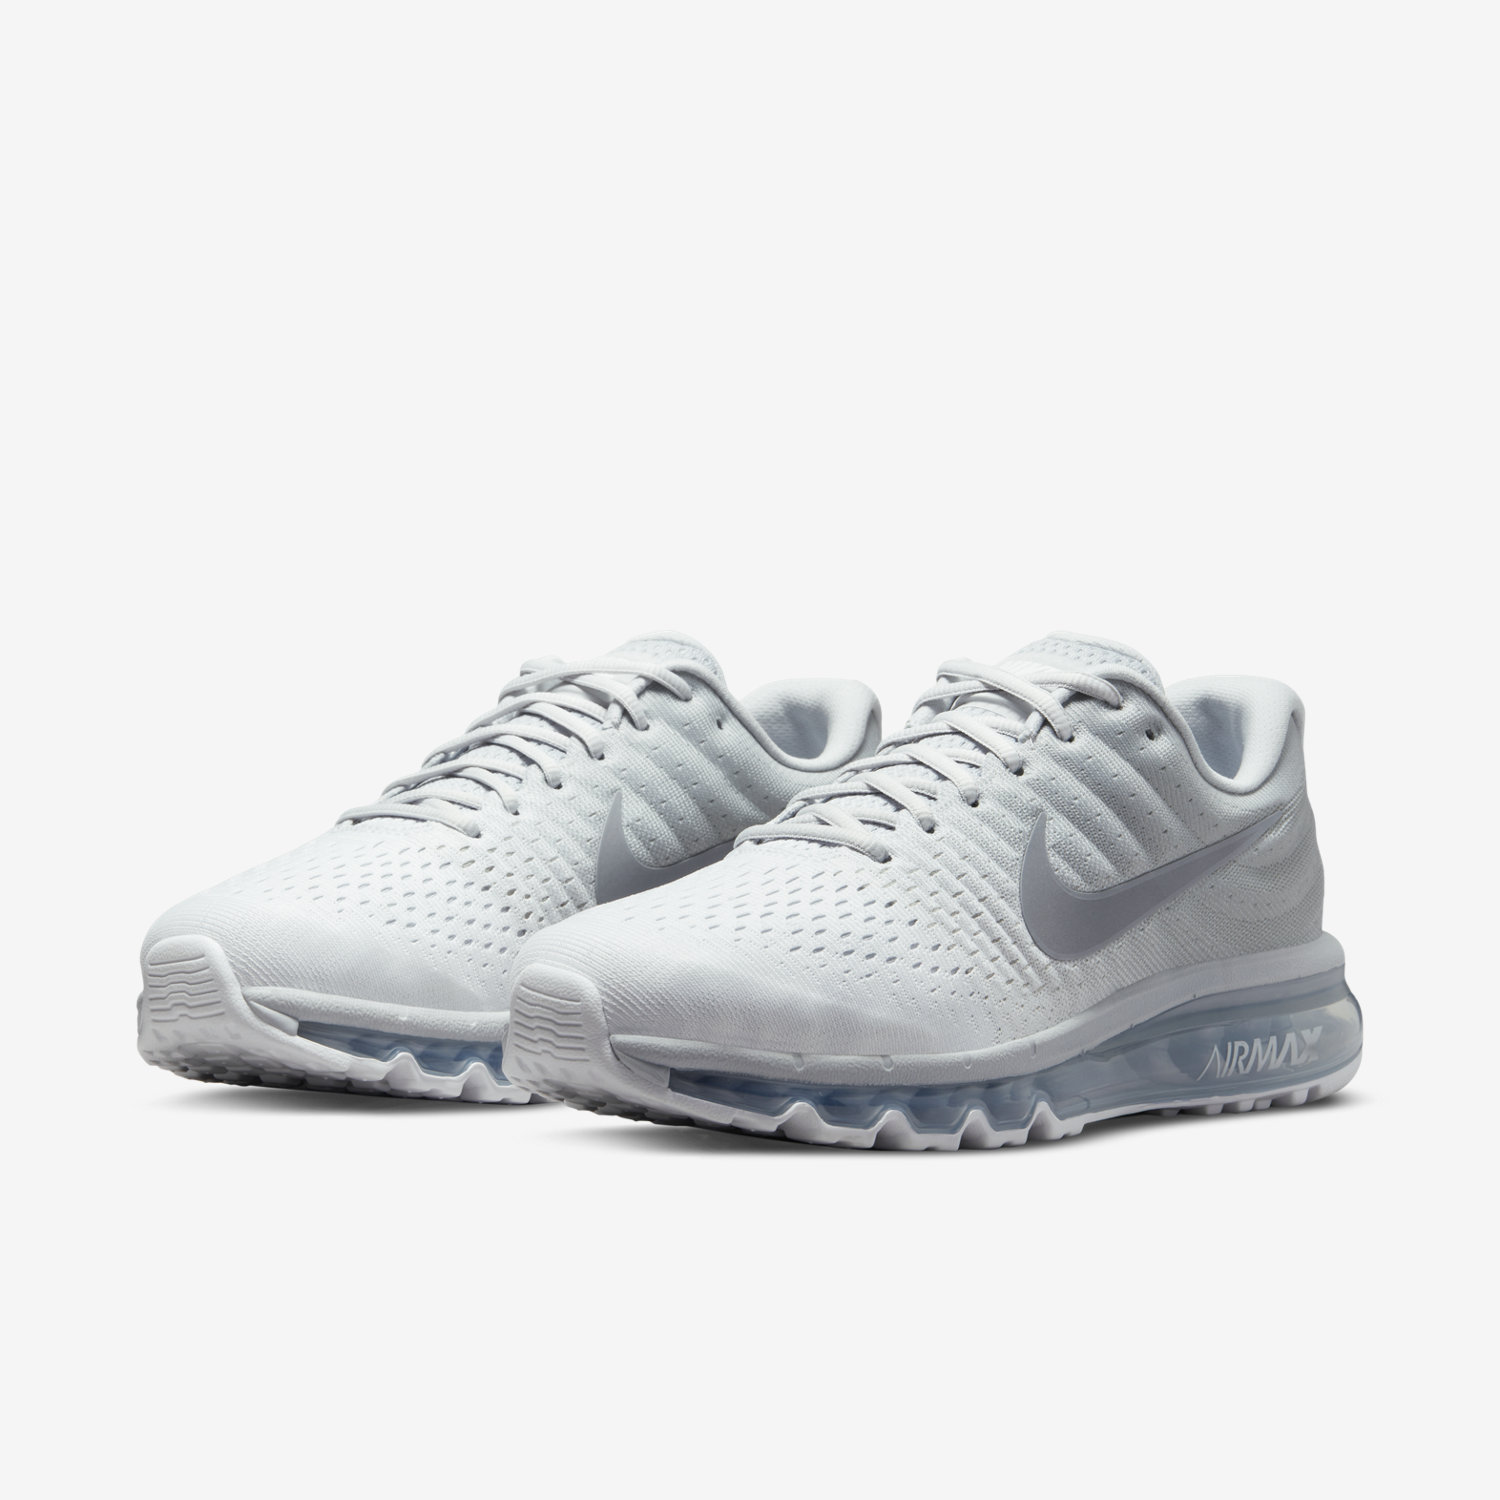 Cheap Nike air max 1 lunarlon